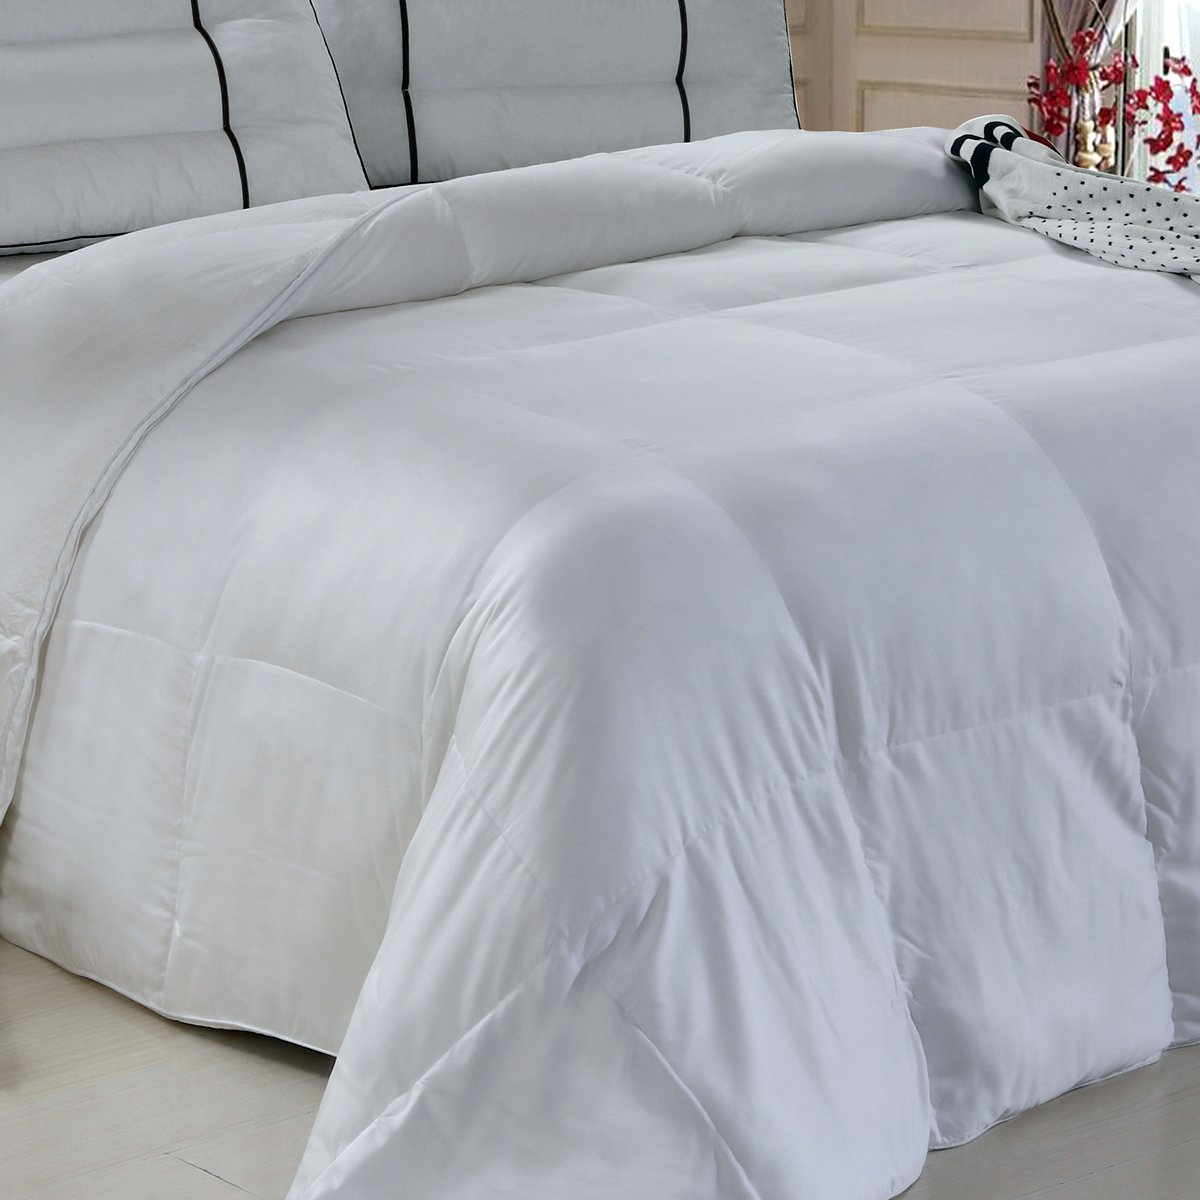 Royal Hotel Silky Soft and Fluffy Bamboo Down Alternative Comforter, 300-Thread-Count, 73 Ounce Fill, Bamboo fabric shell, Queen, Solid White